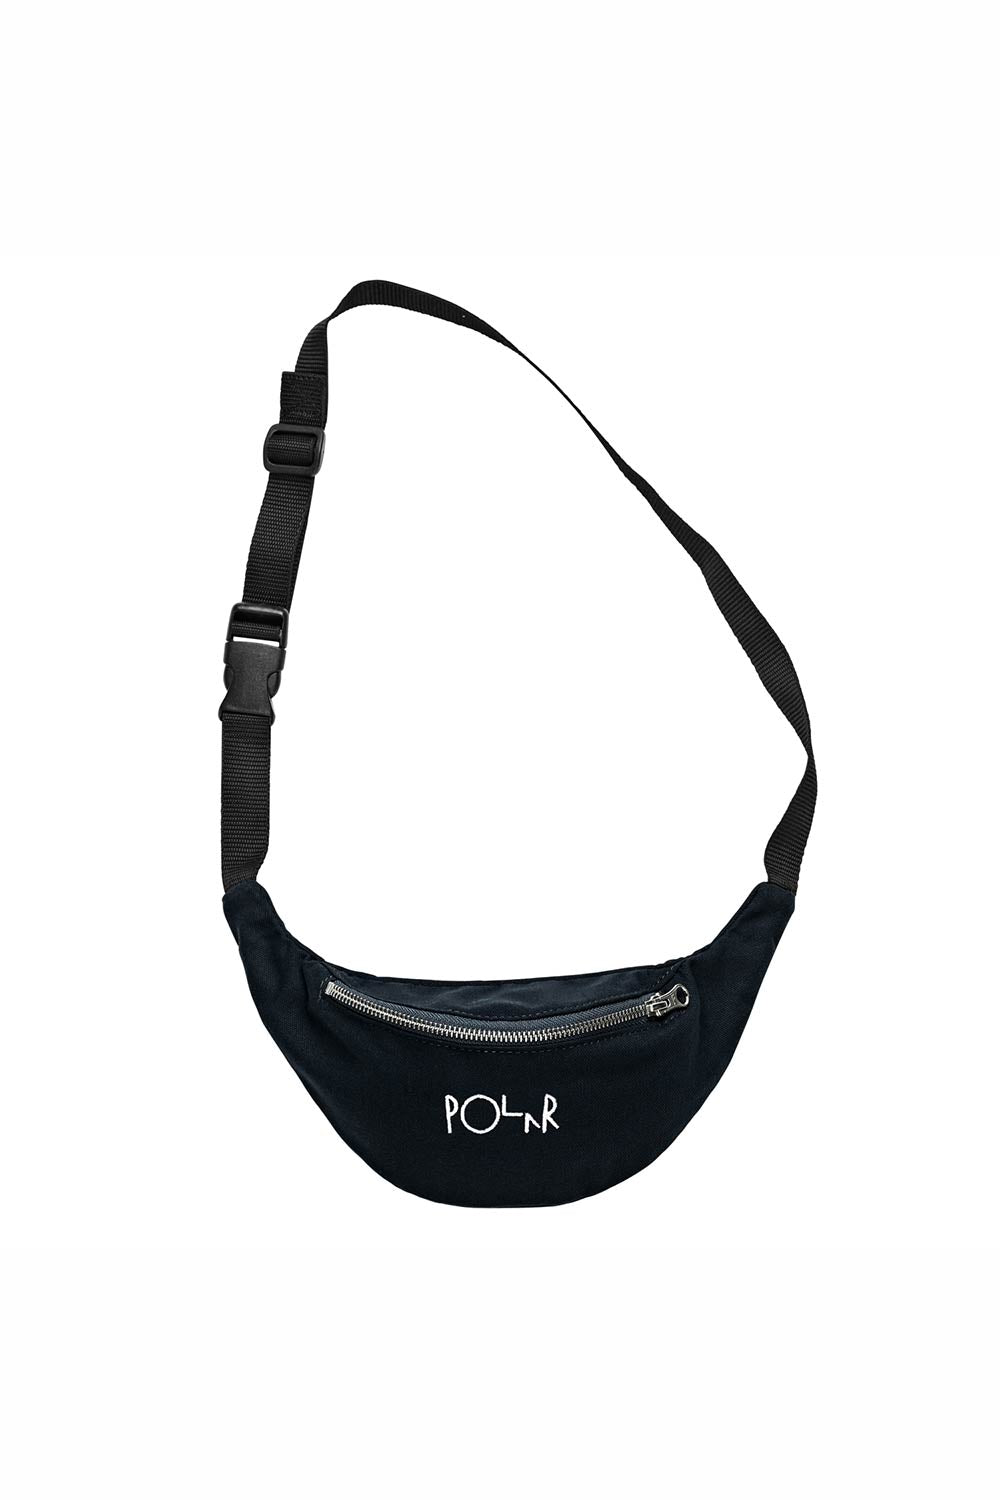 Polar Skate Co Script Logo Hip Bag - Black